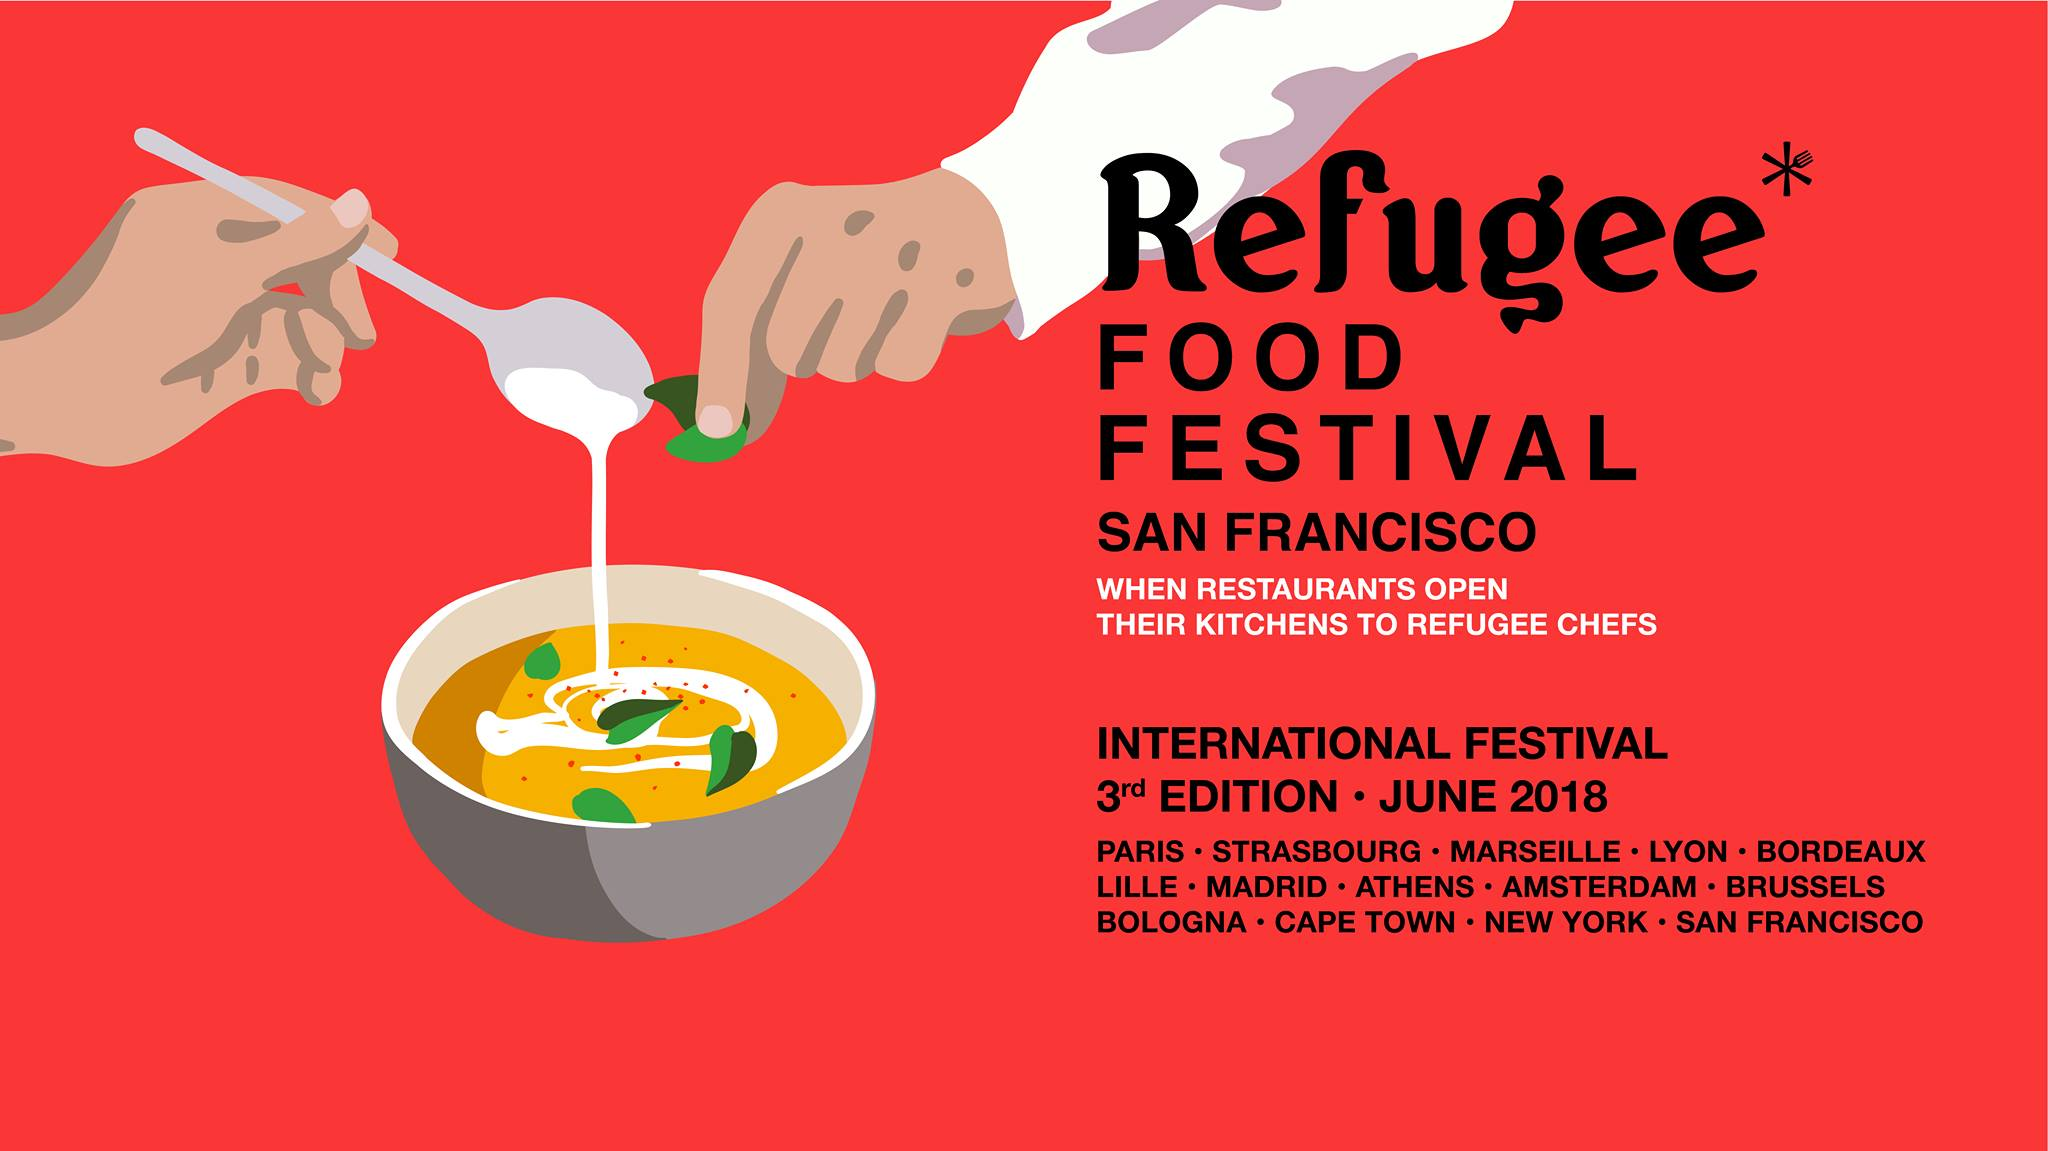 Refugee Food Festival - San Francisco